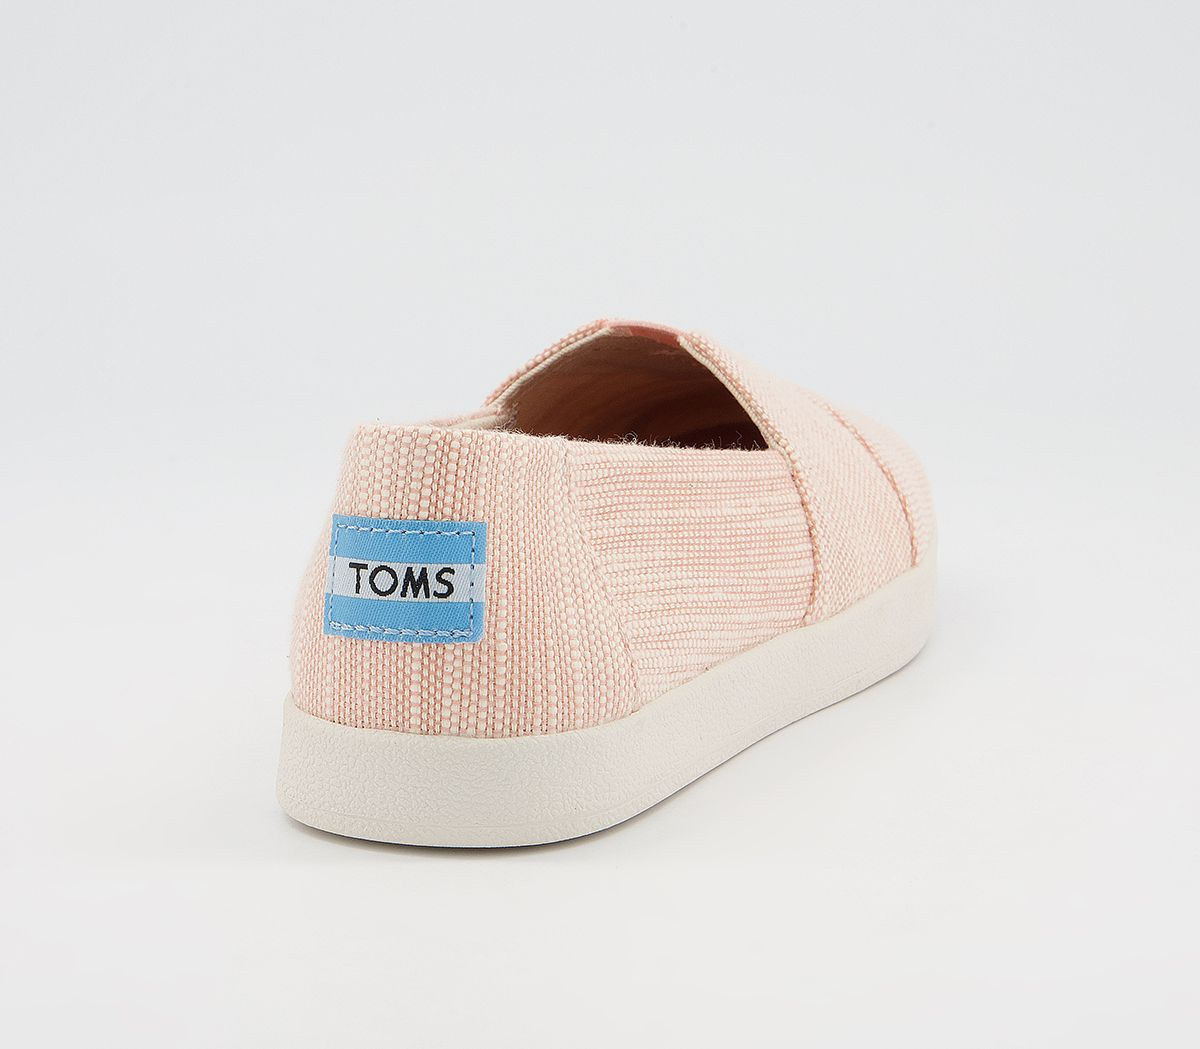 d48281d6c20 Avalon Sneakers. Avalon Sneakers. Double tap to zoom into the image. Toms